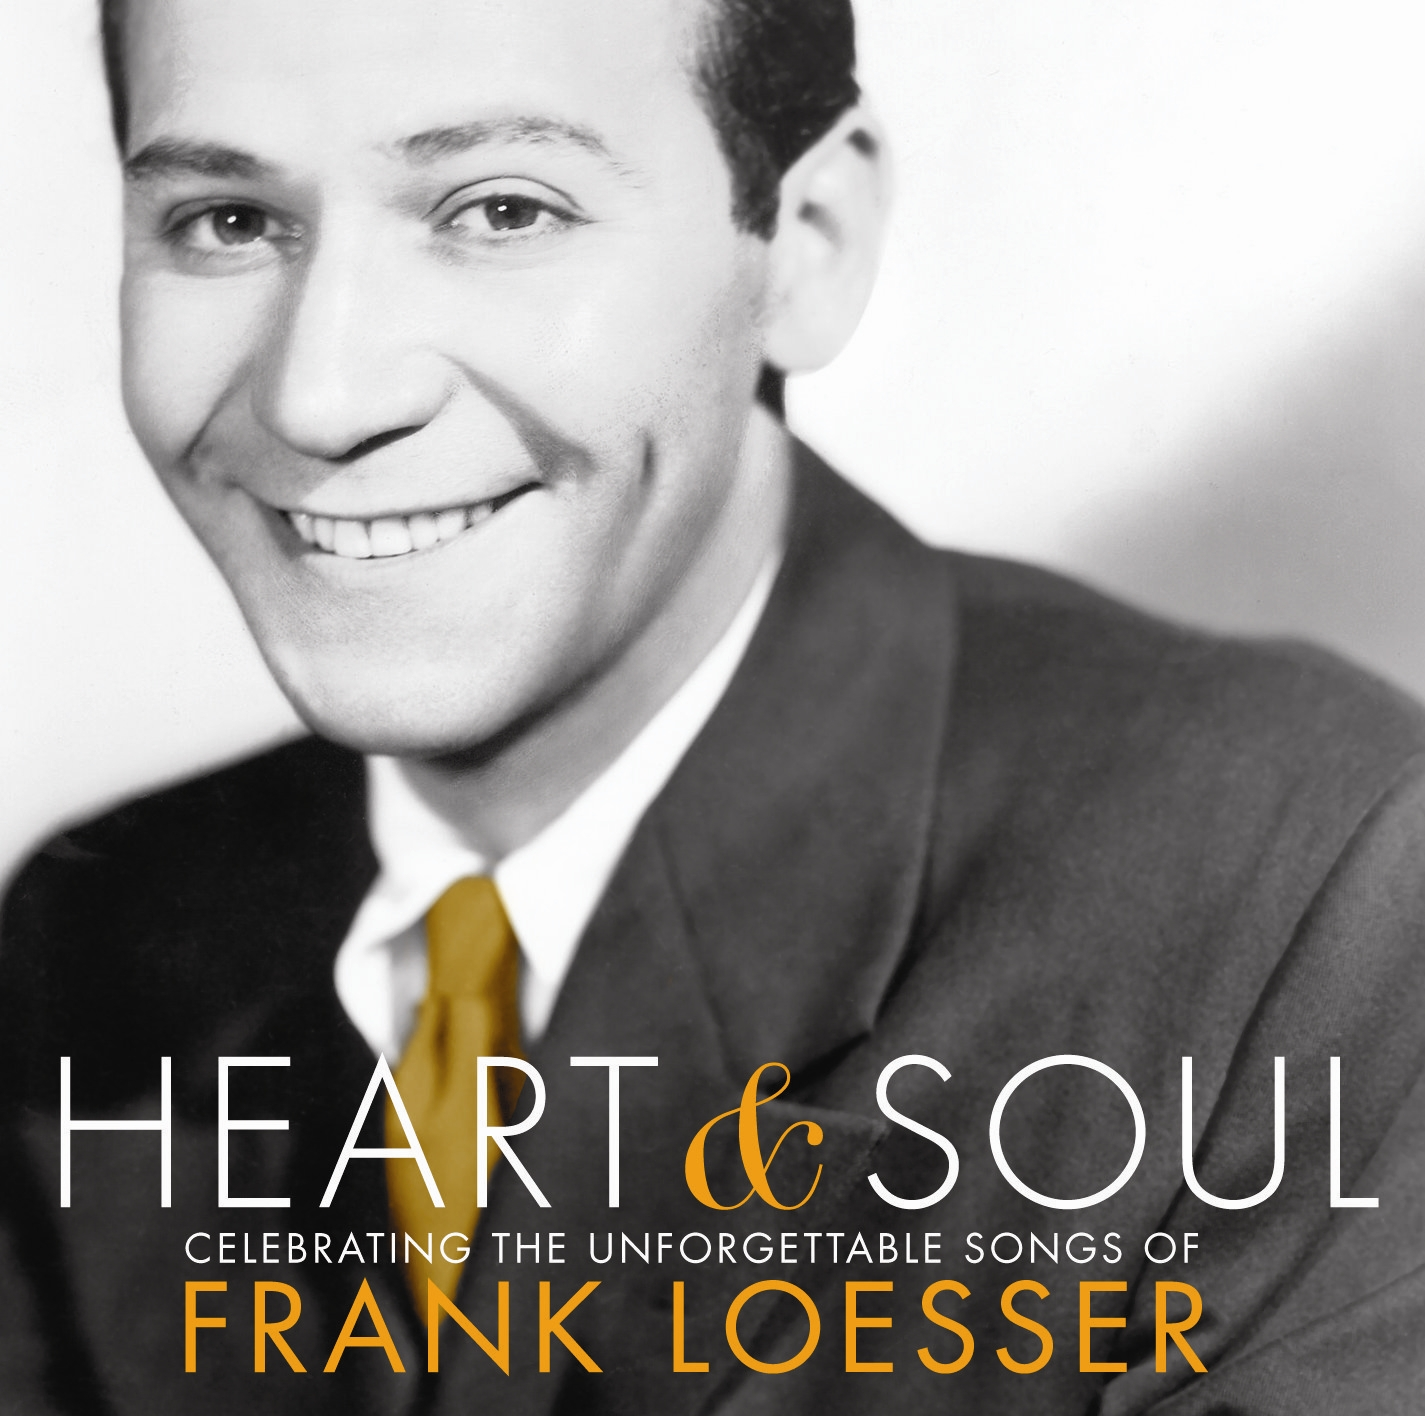 Heart and Soul: Celebrating the Unforgettable Songs of Frank Loesser